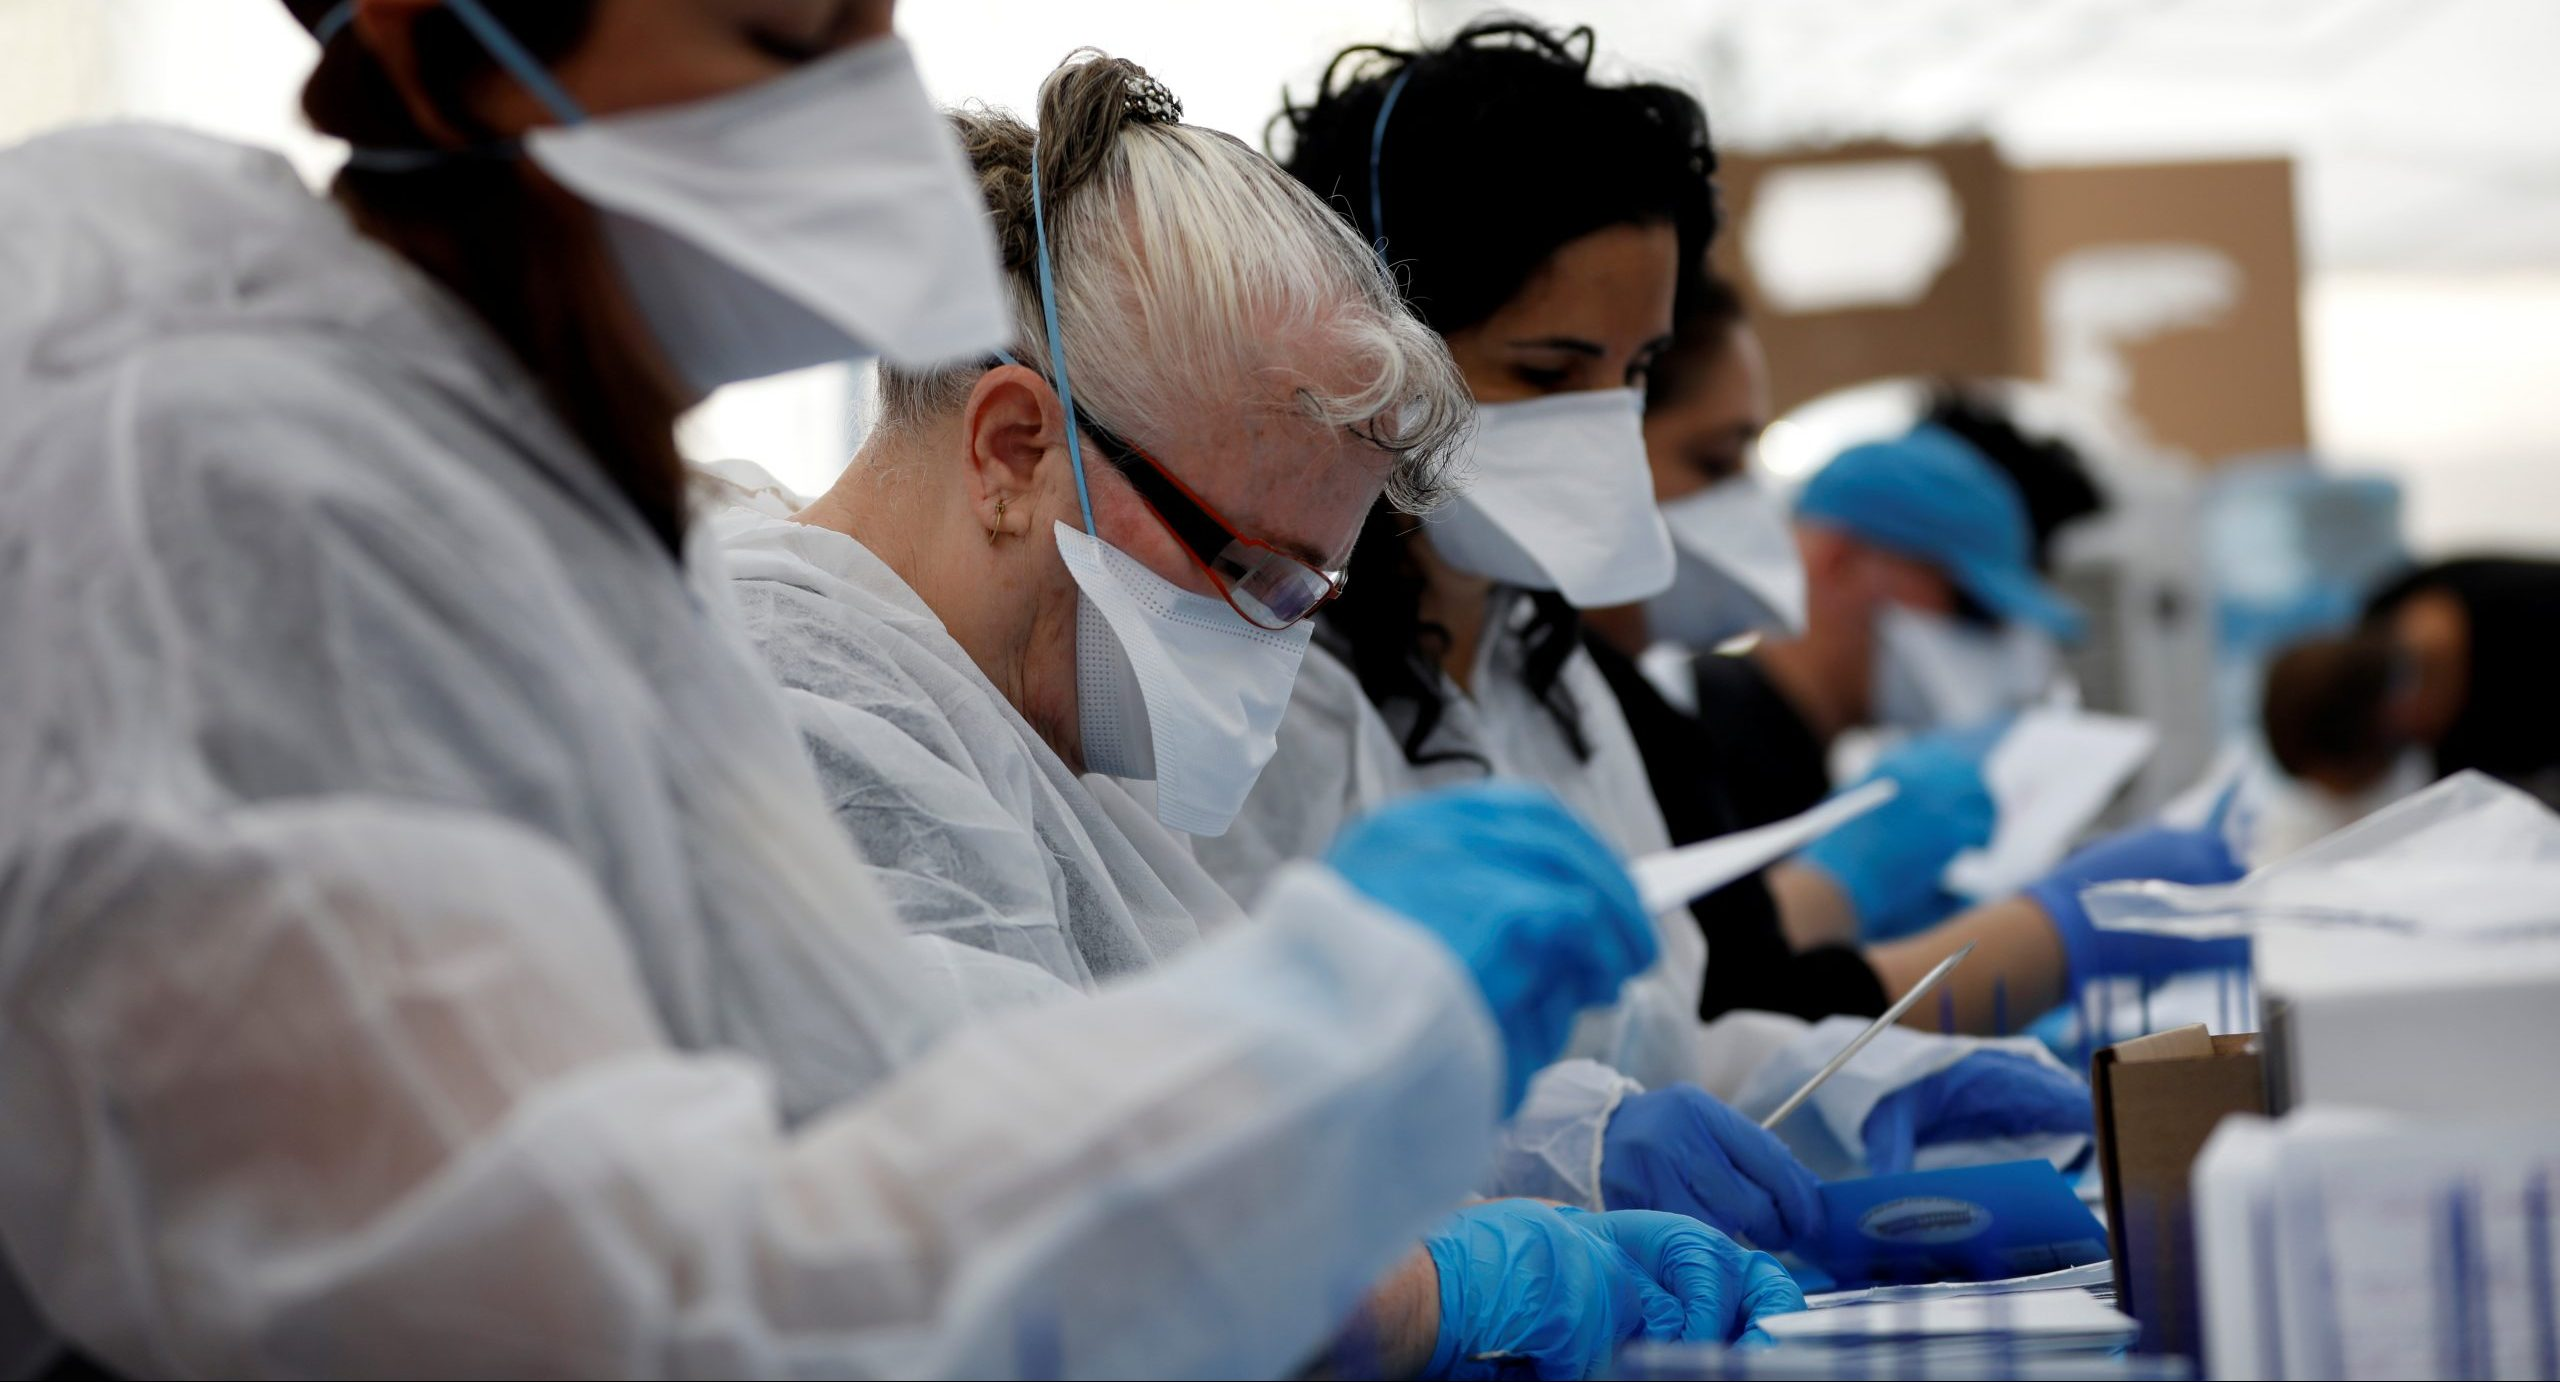 Israel sees COVID-19 cases increase to 16,193